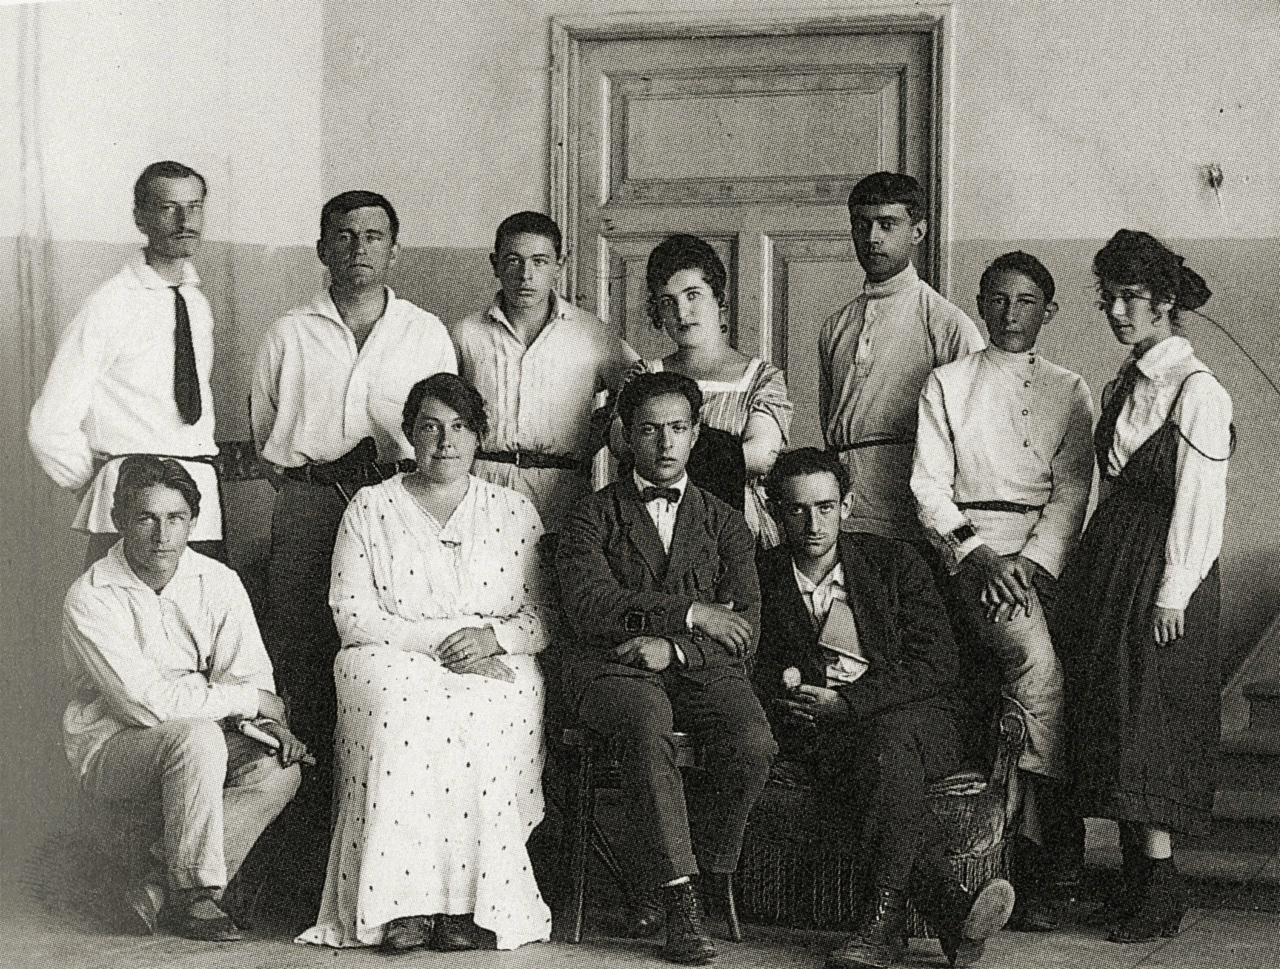 Left-to-right, standing- I.Chervinko, K.Malevich, T.Royak, A.Kagan N.Suetin, L.Yudin, E.Magaril; seated- M.Vexler, V.Ermolaeva, I.Chashnik, L.Khidekel11